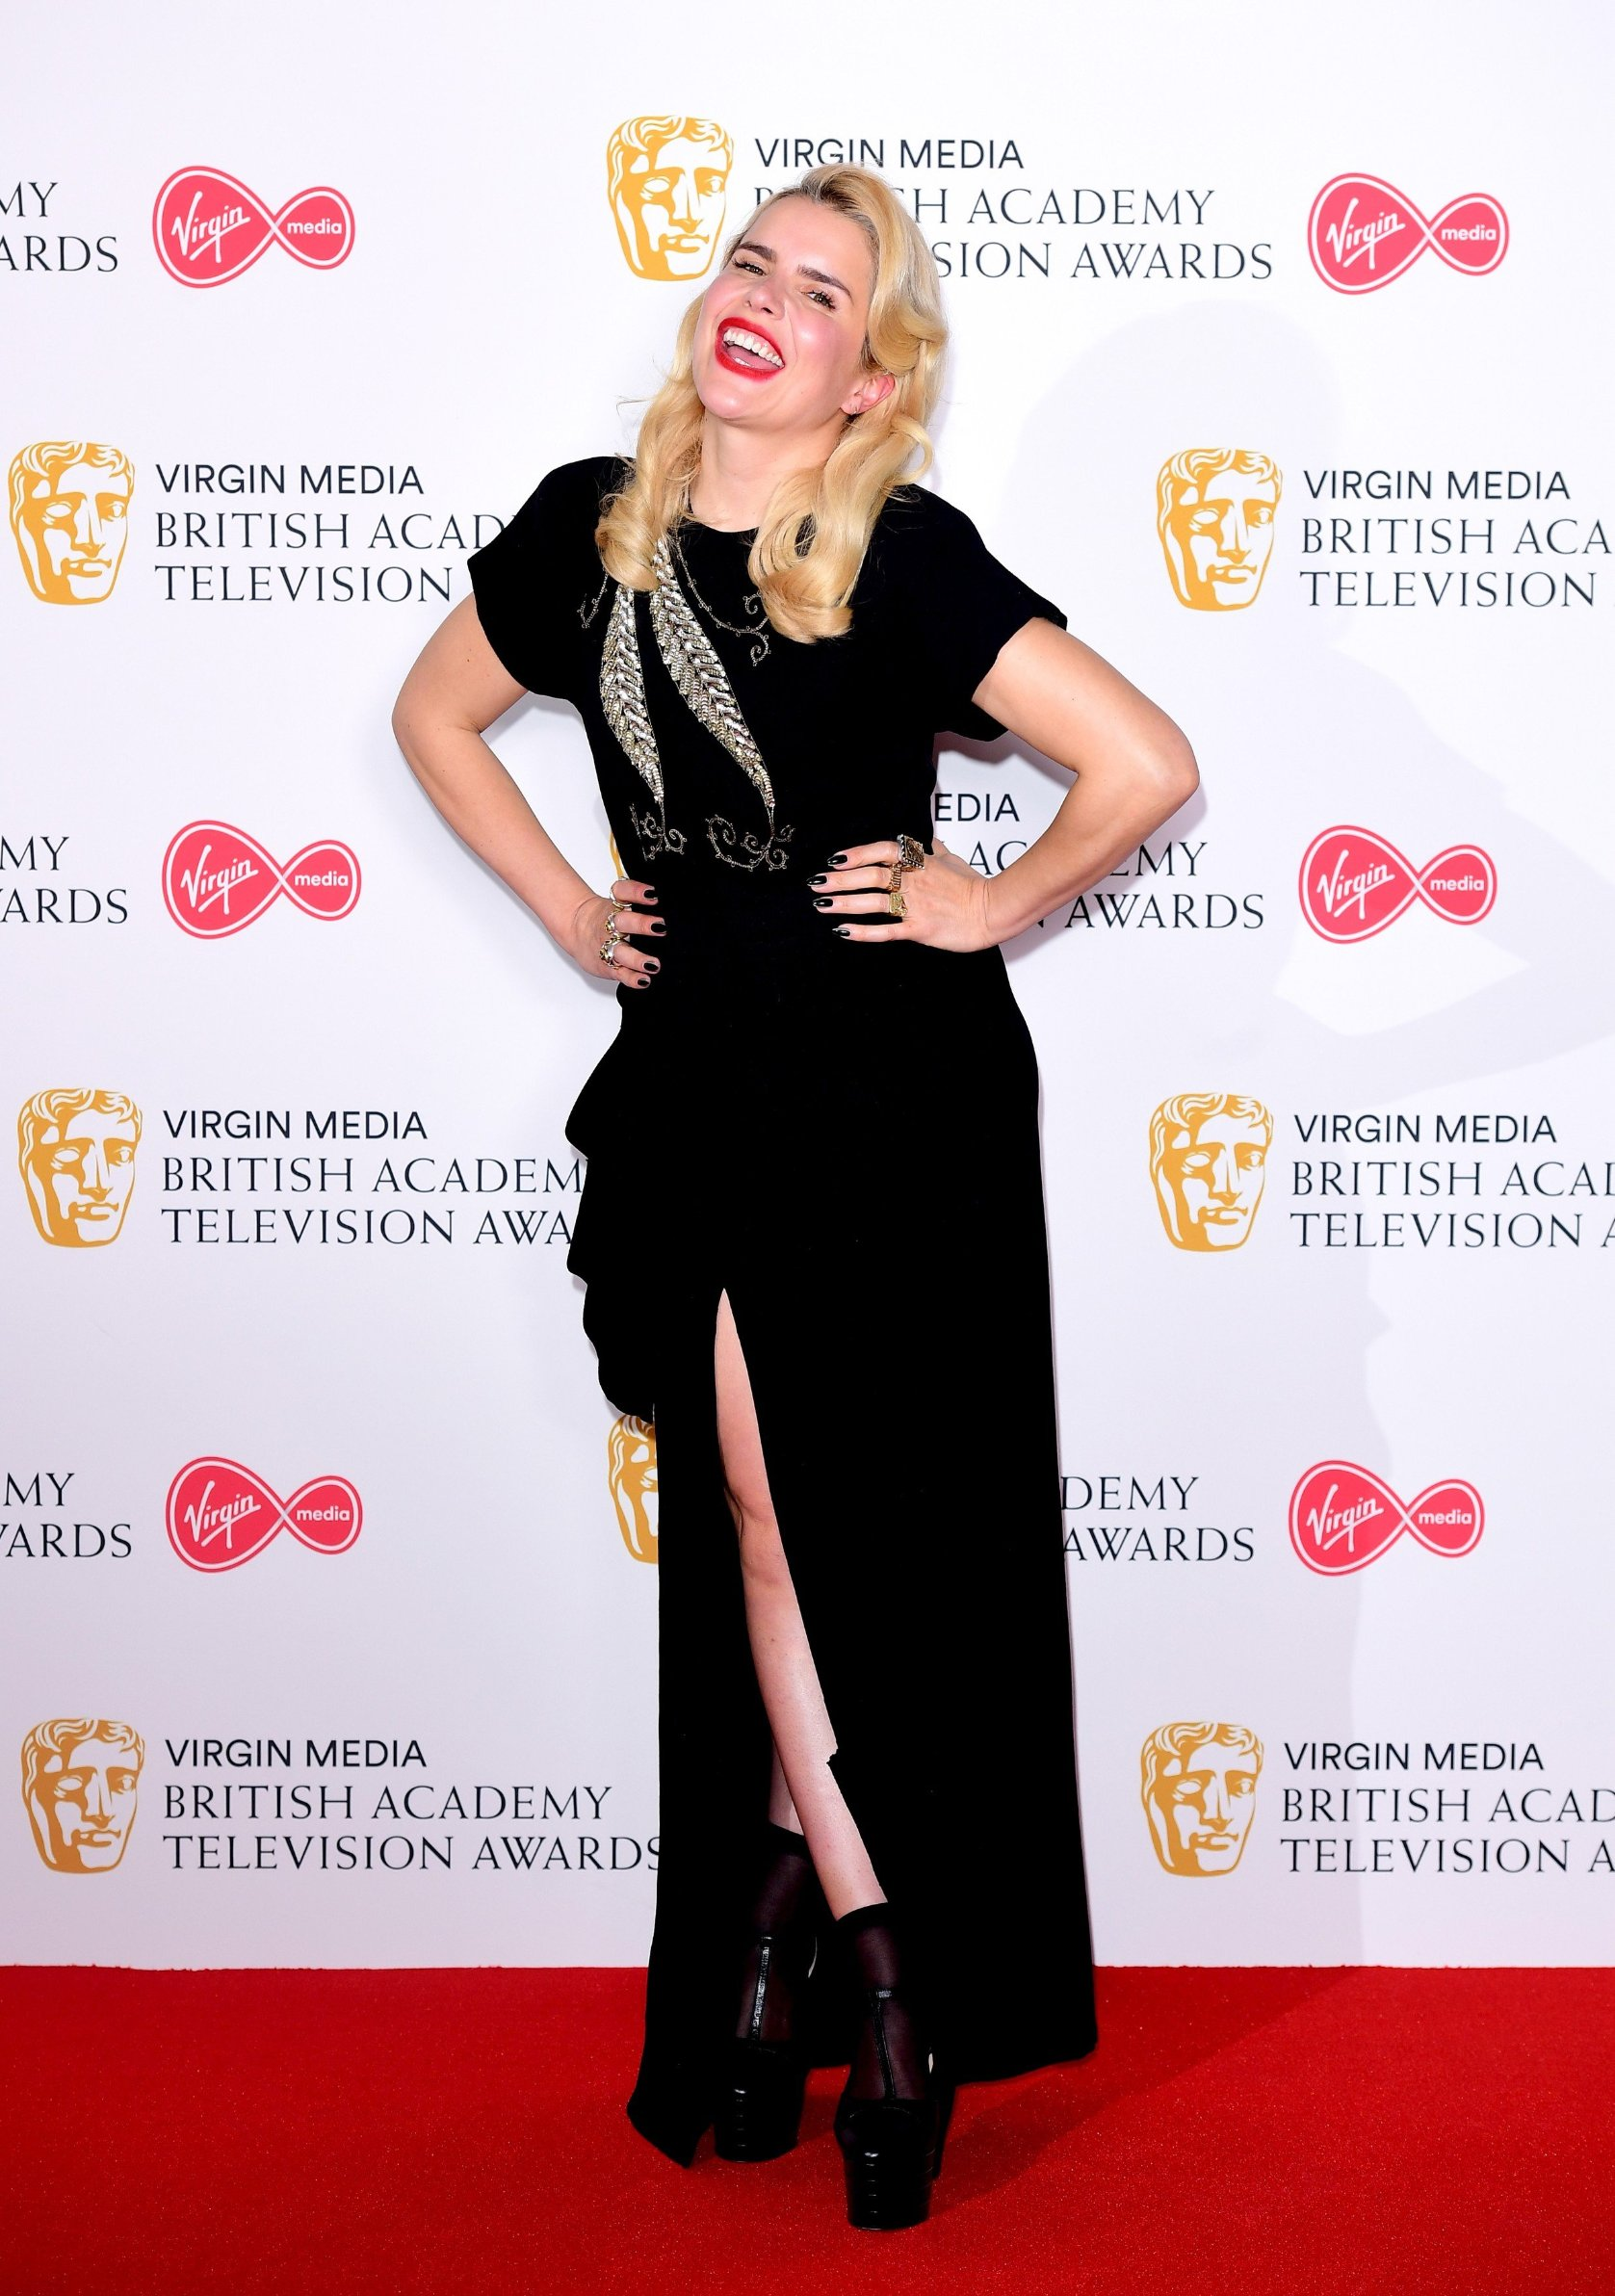 Paloma Faith in the press room at the Virgin Media BAFTA TV awards, held at the Royal Festival Hall in London., Image: 432690851, License: Rights-managed, Restrictions: , Model Release: no, Credit line: Profimedia, Press Association